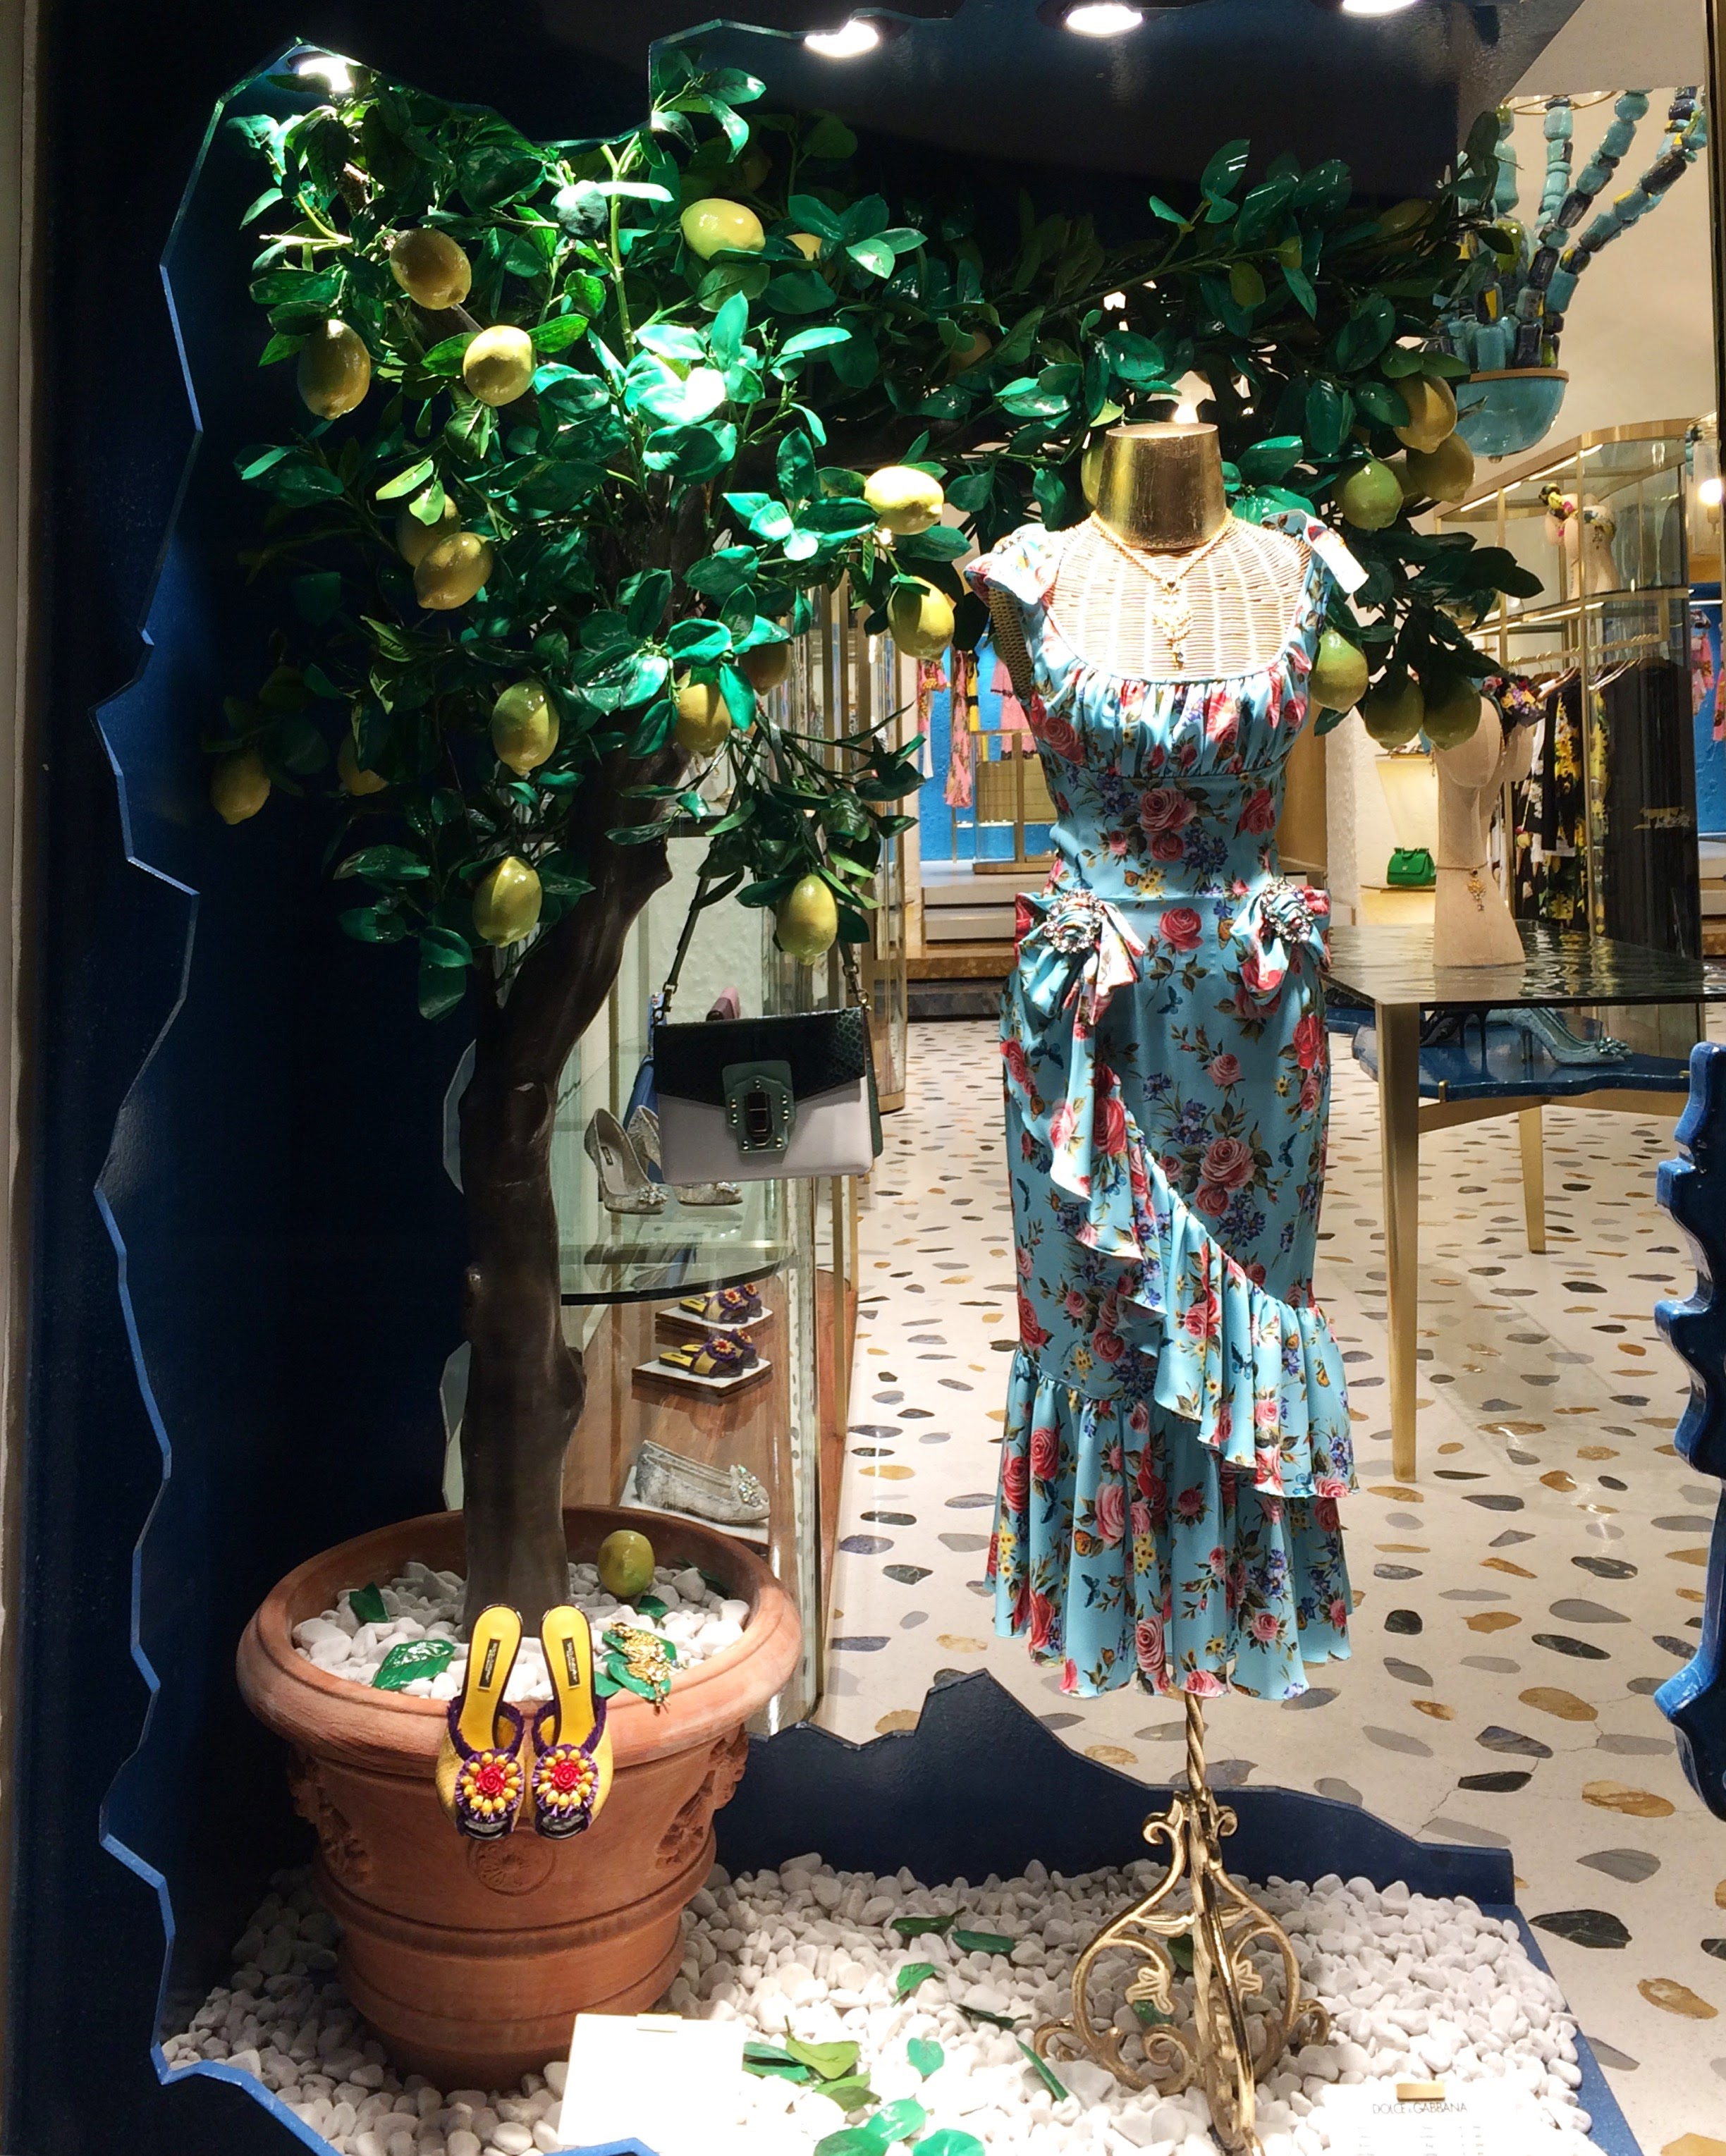 Dolce Gabbana window shop, Capri - Photo: Vibes